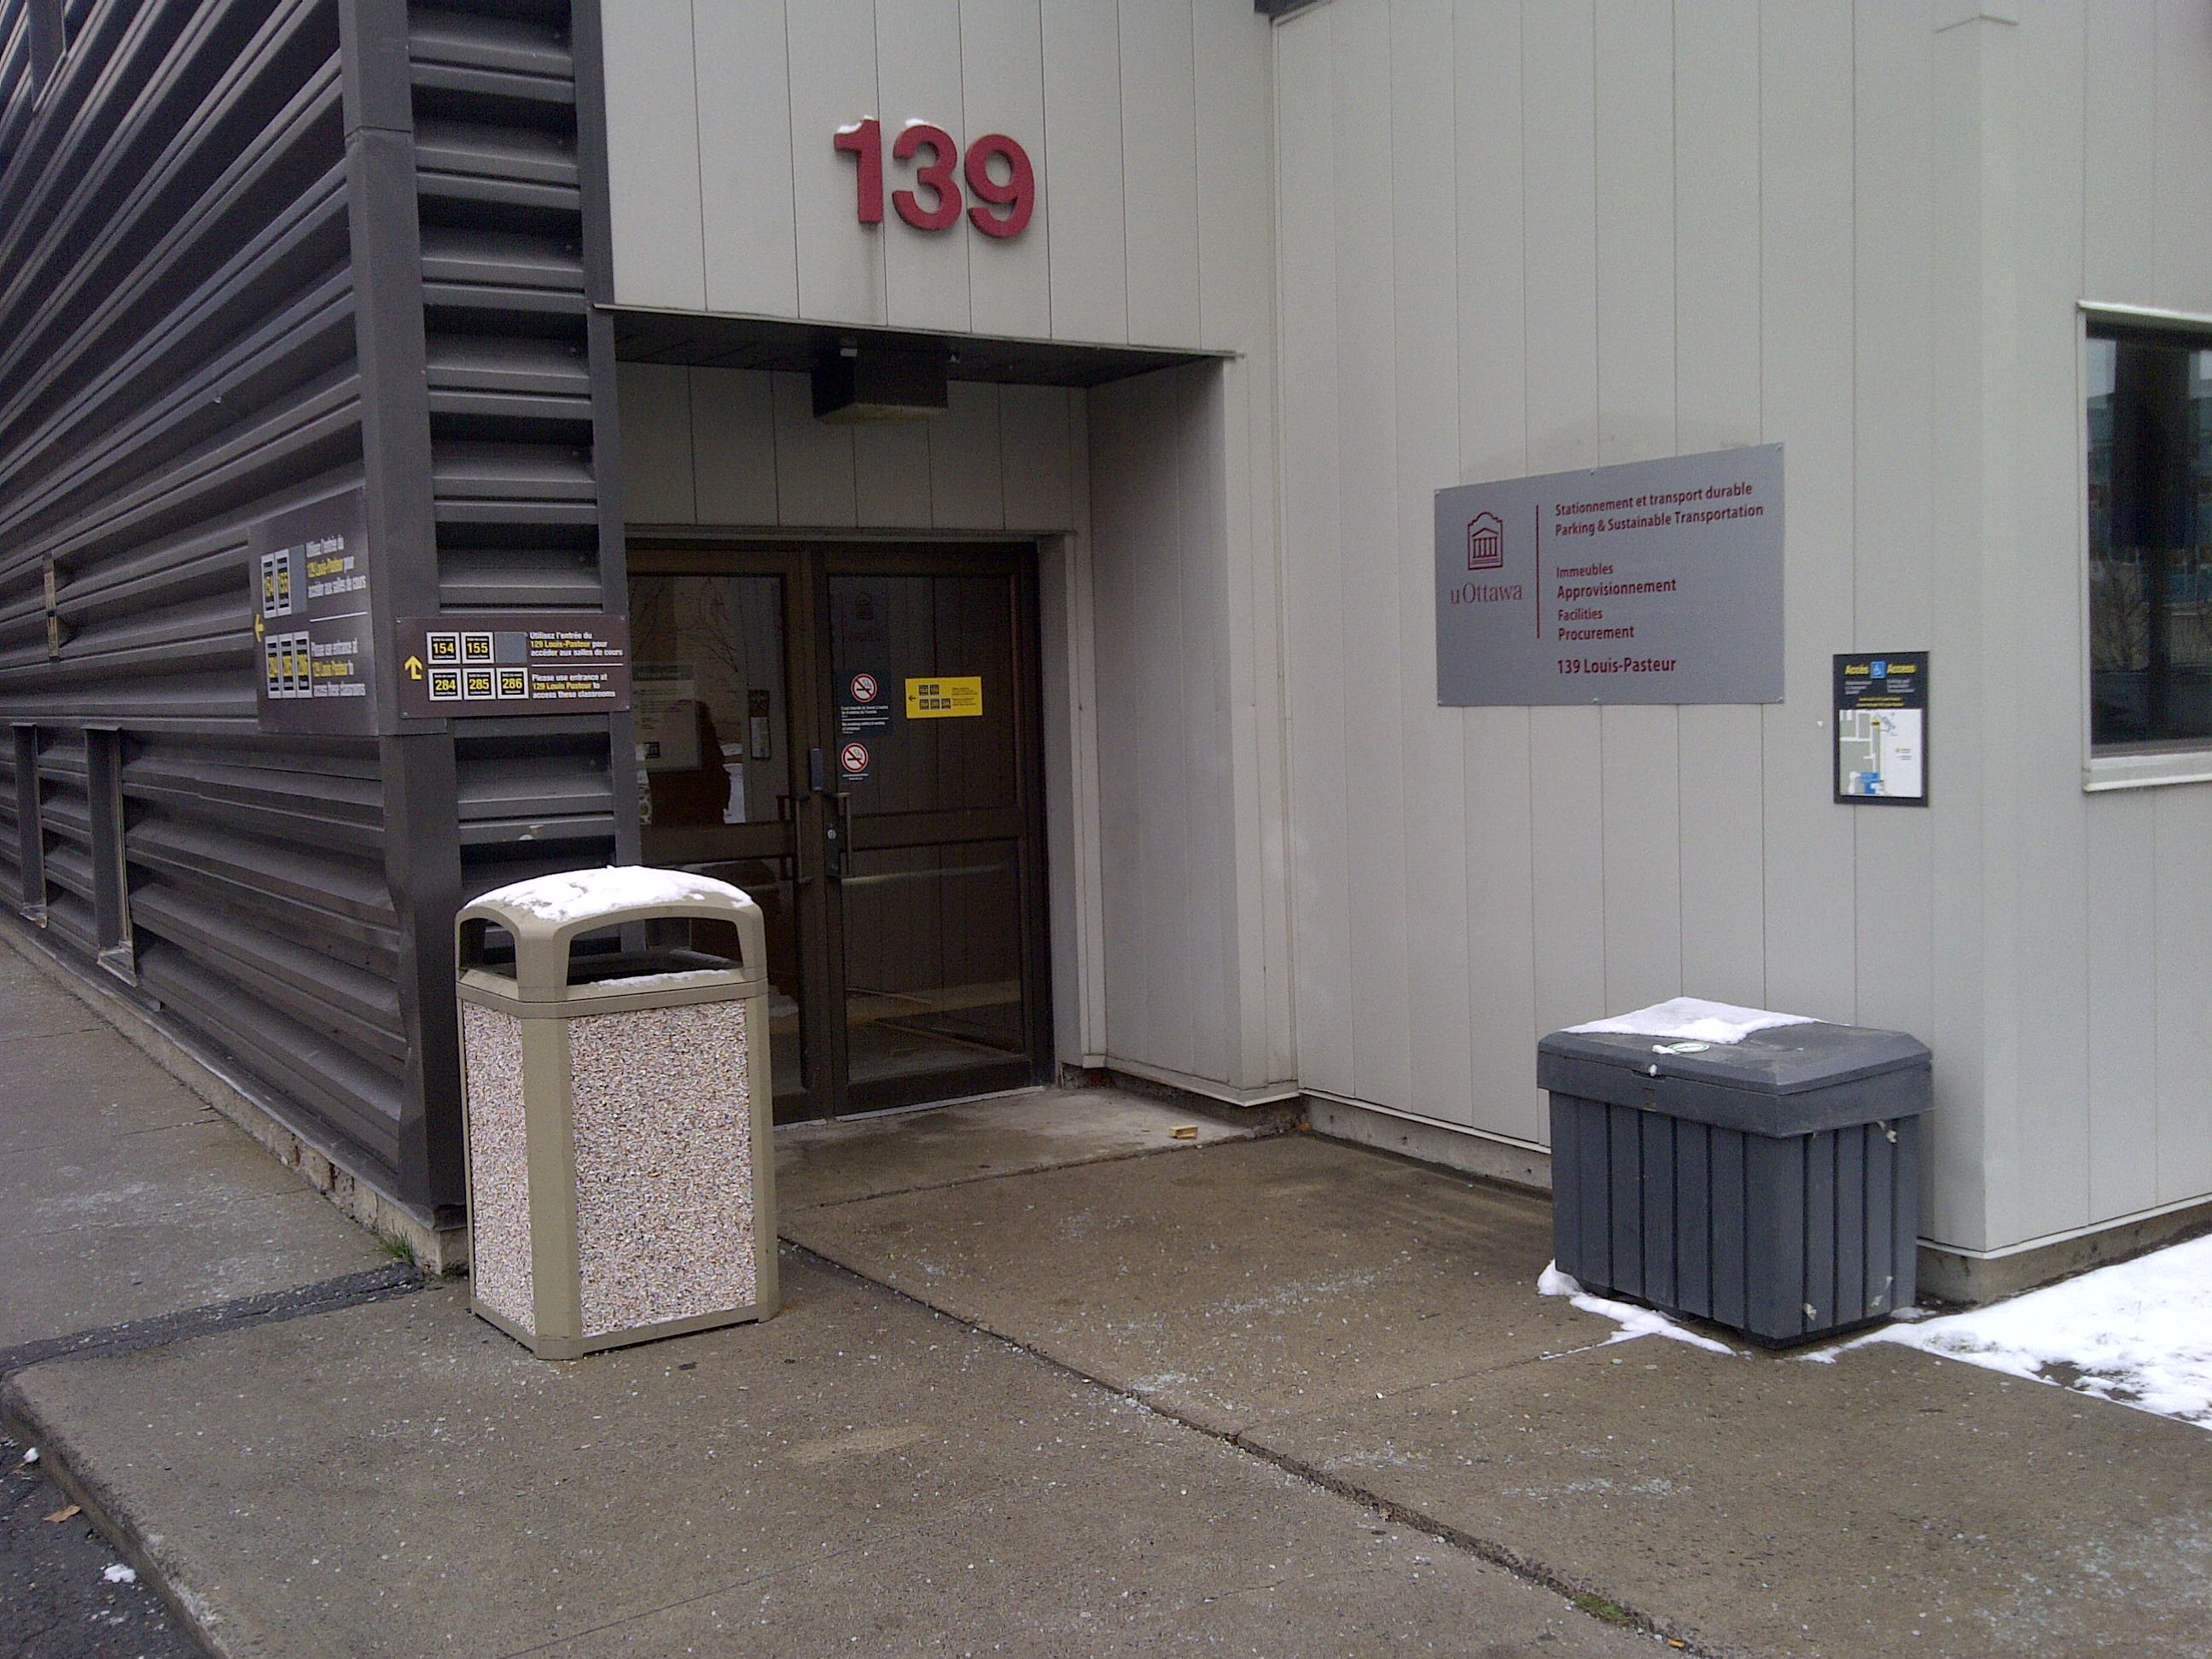 picture of entrance to 139 louis-pasteur